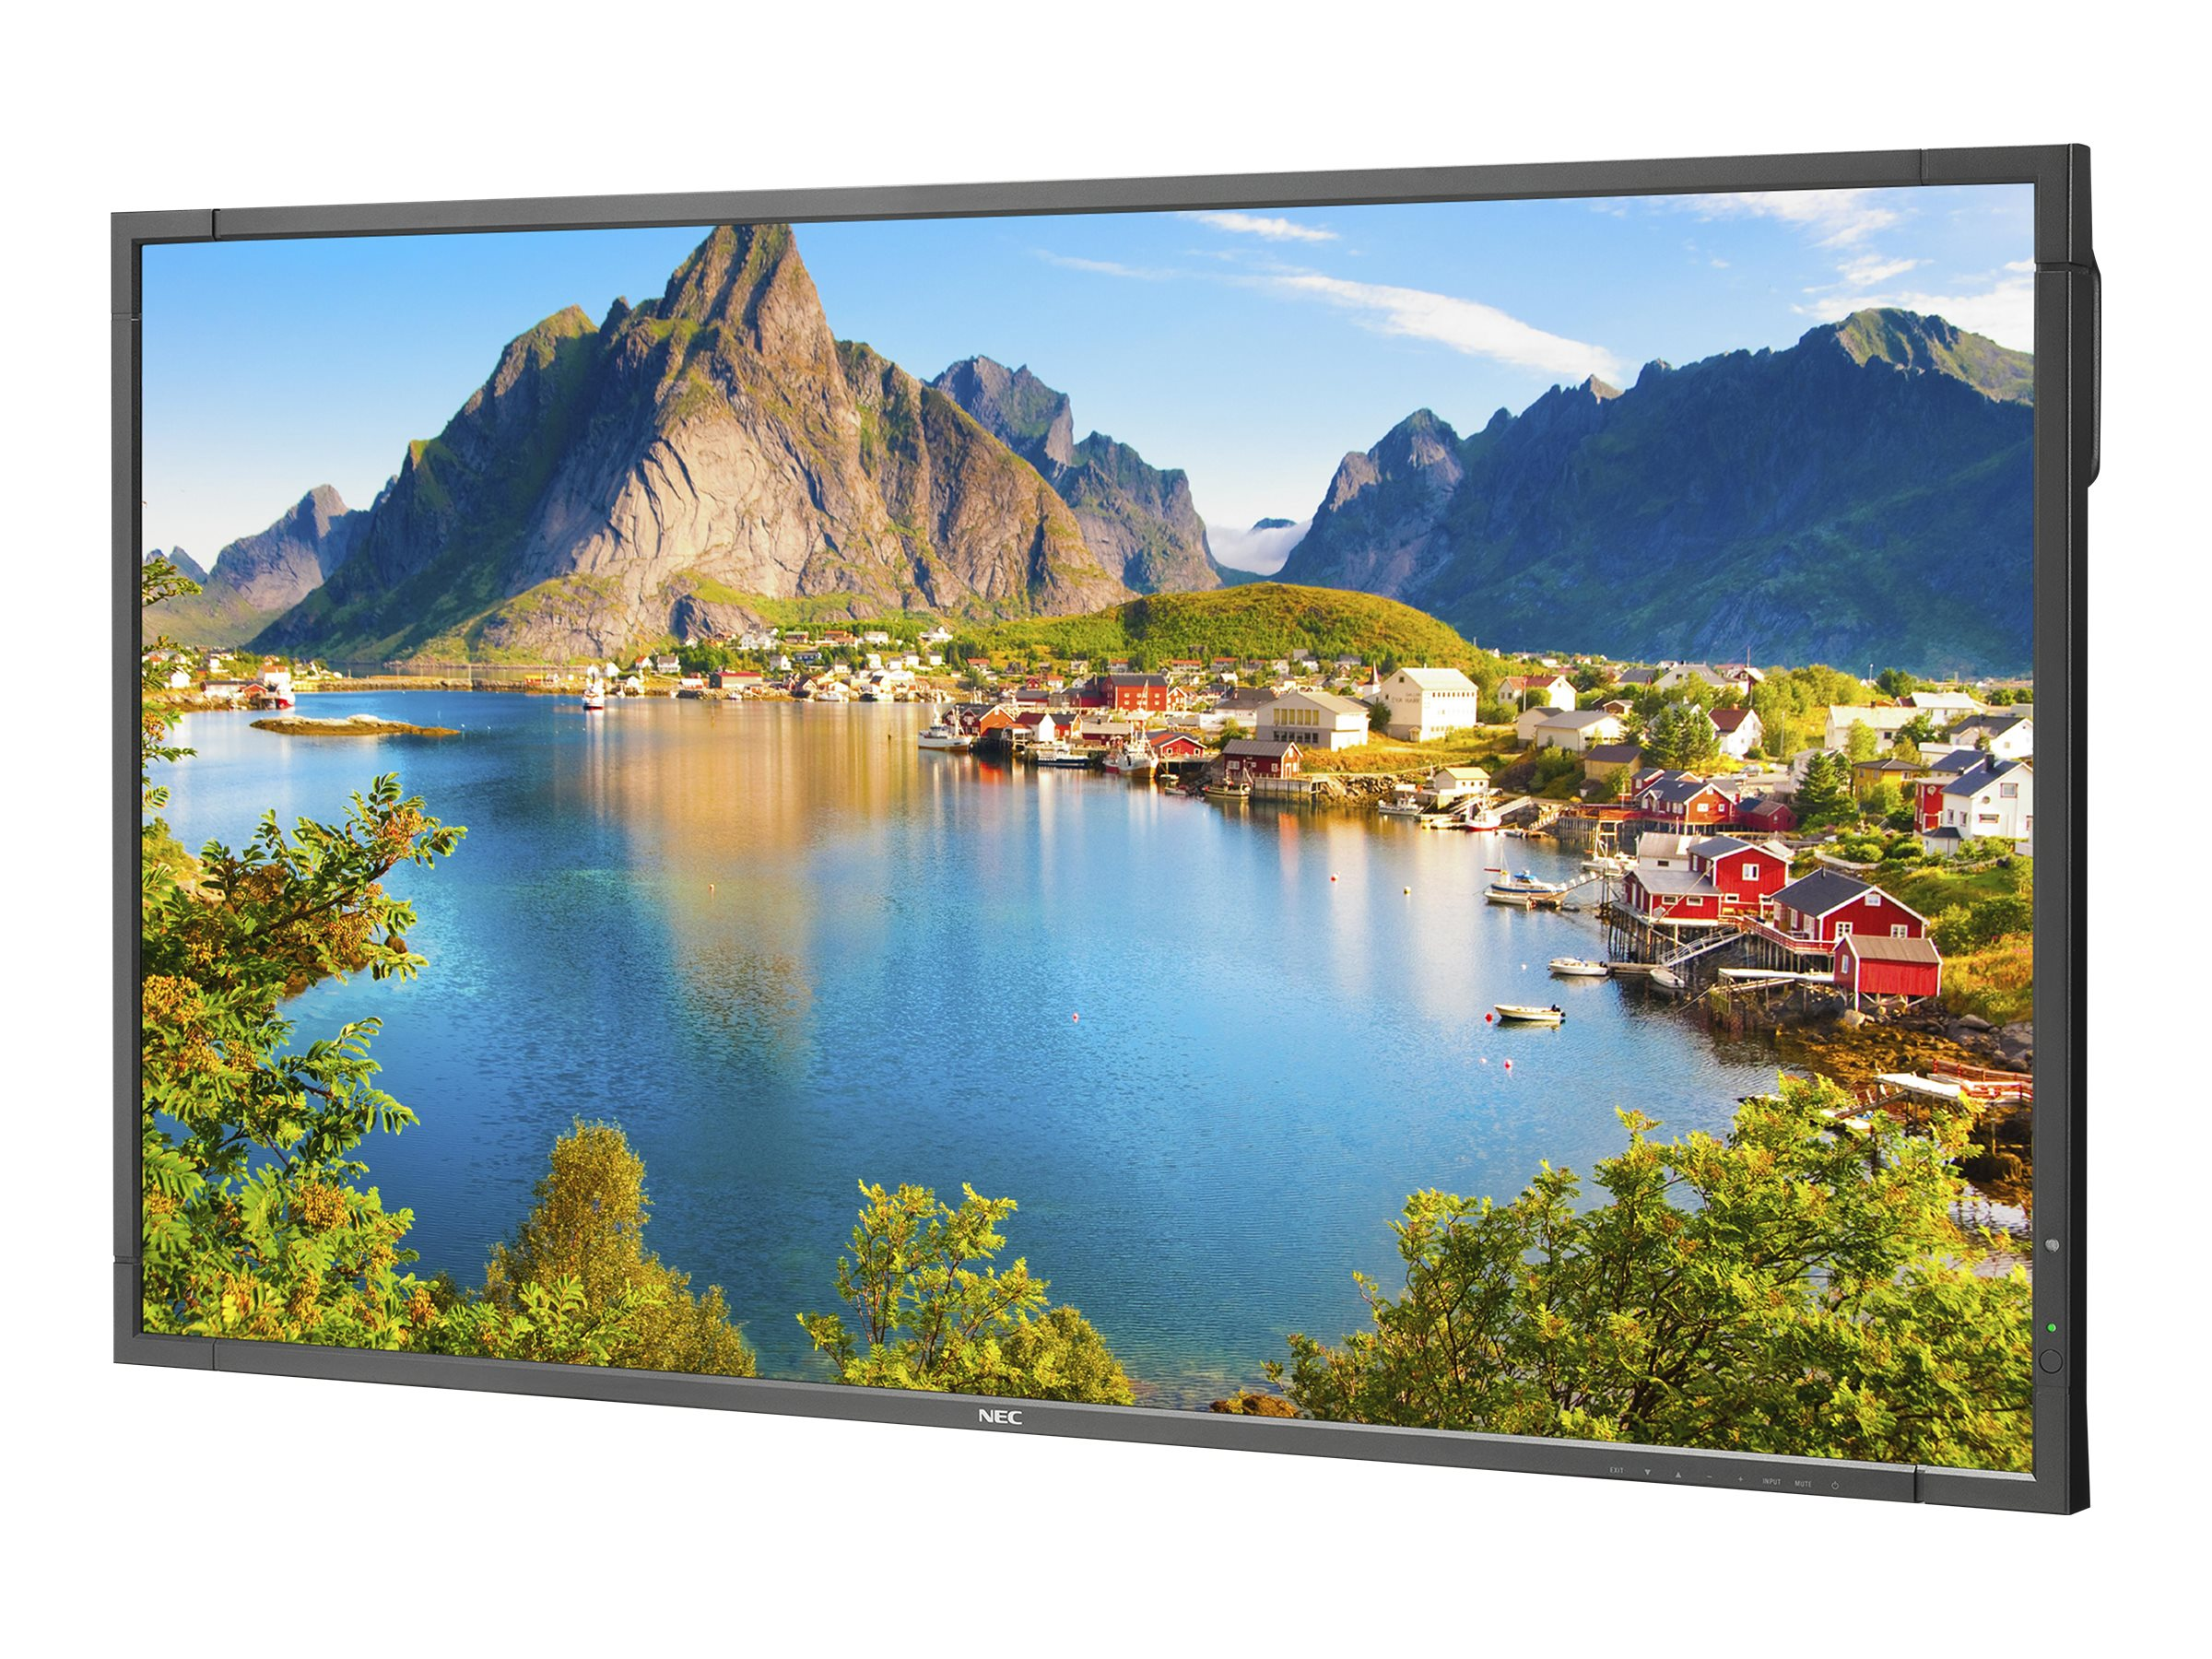 NEC 80 E805 Full HD LED-LCD Commercial Display, Black, E805